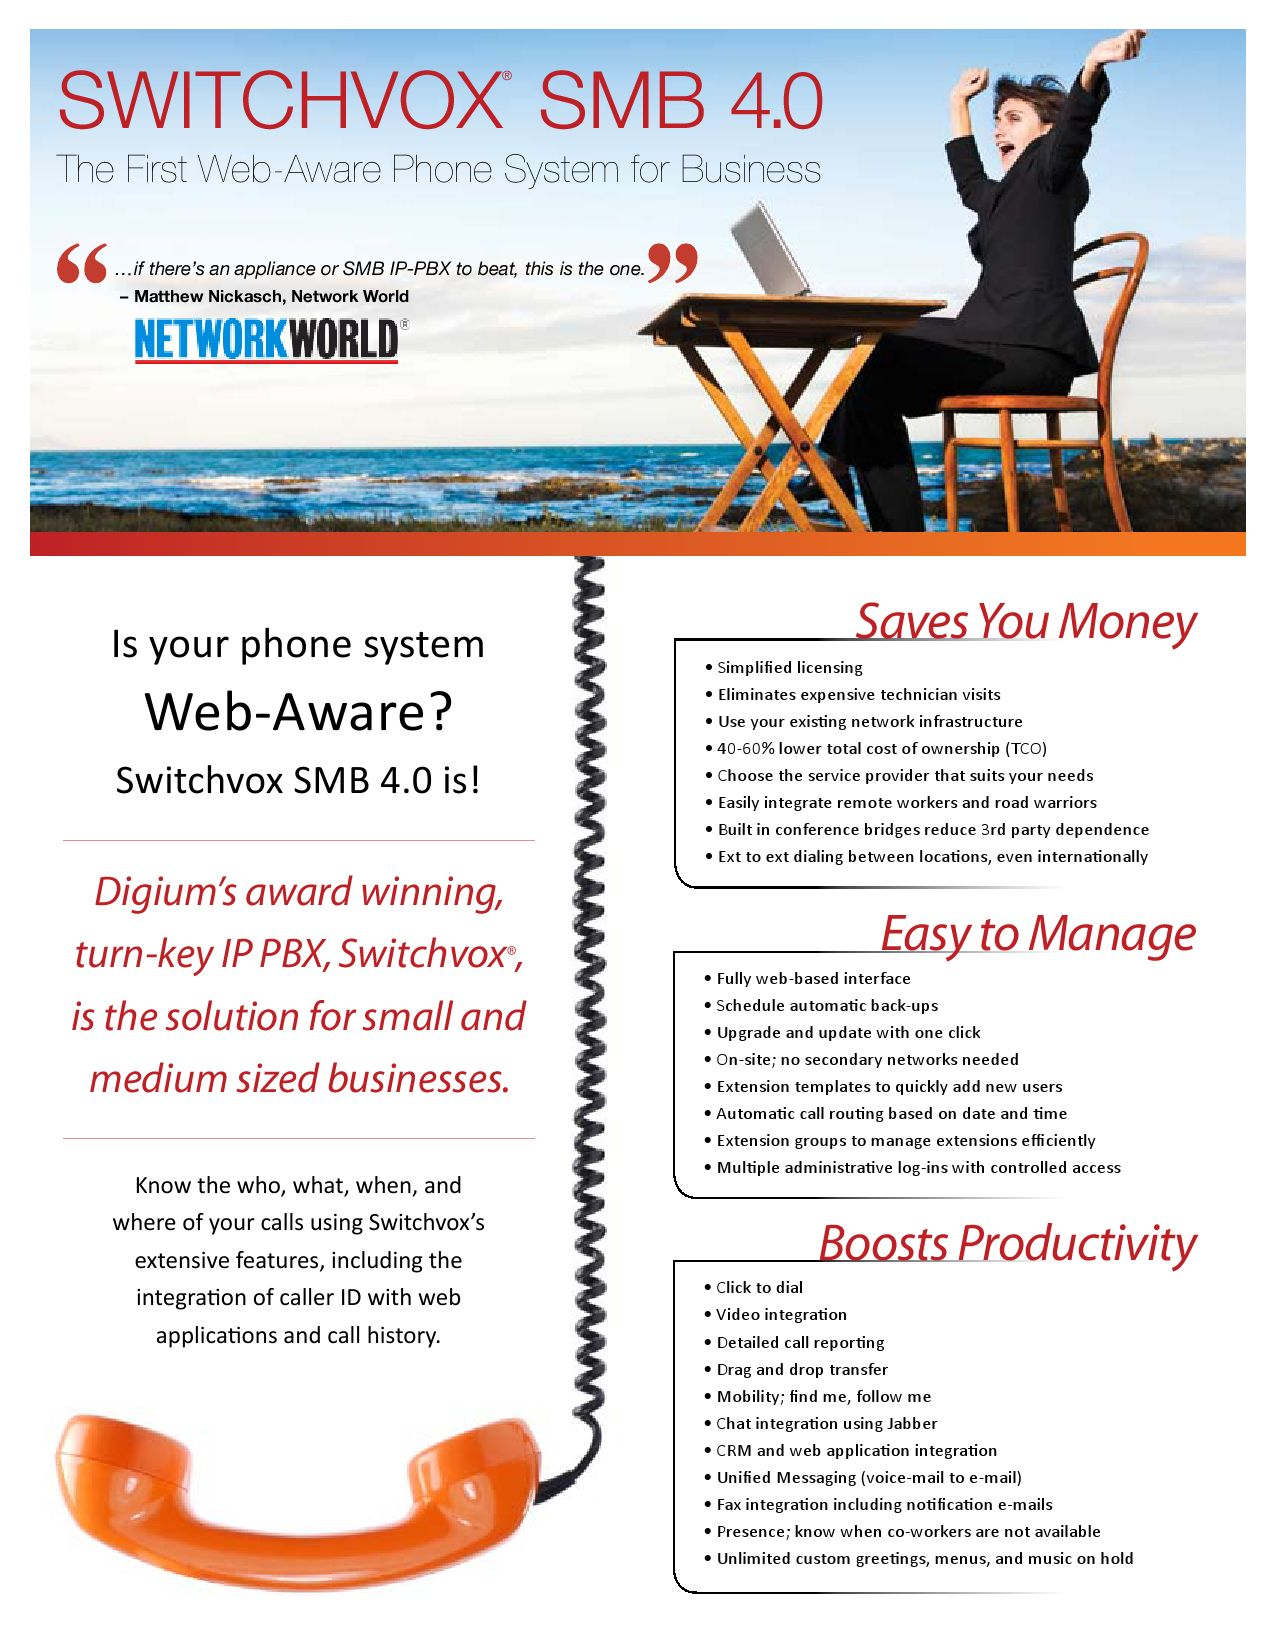 VoIP Telephone Systems, Telephone System, Phone System, VoIP Phone